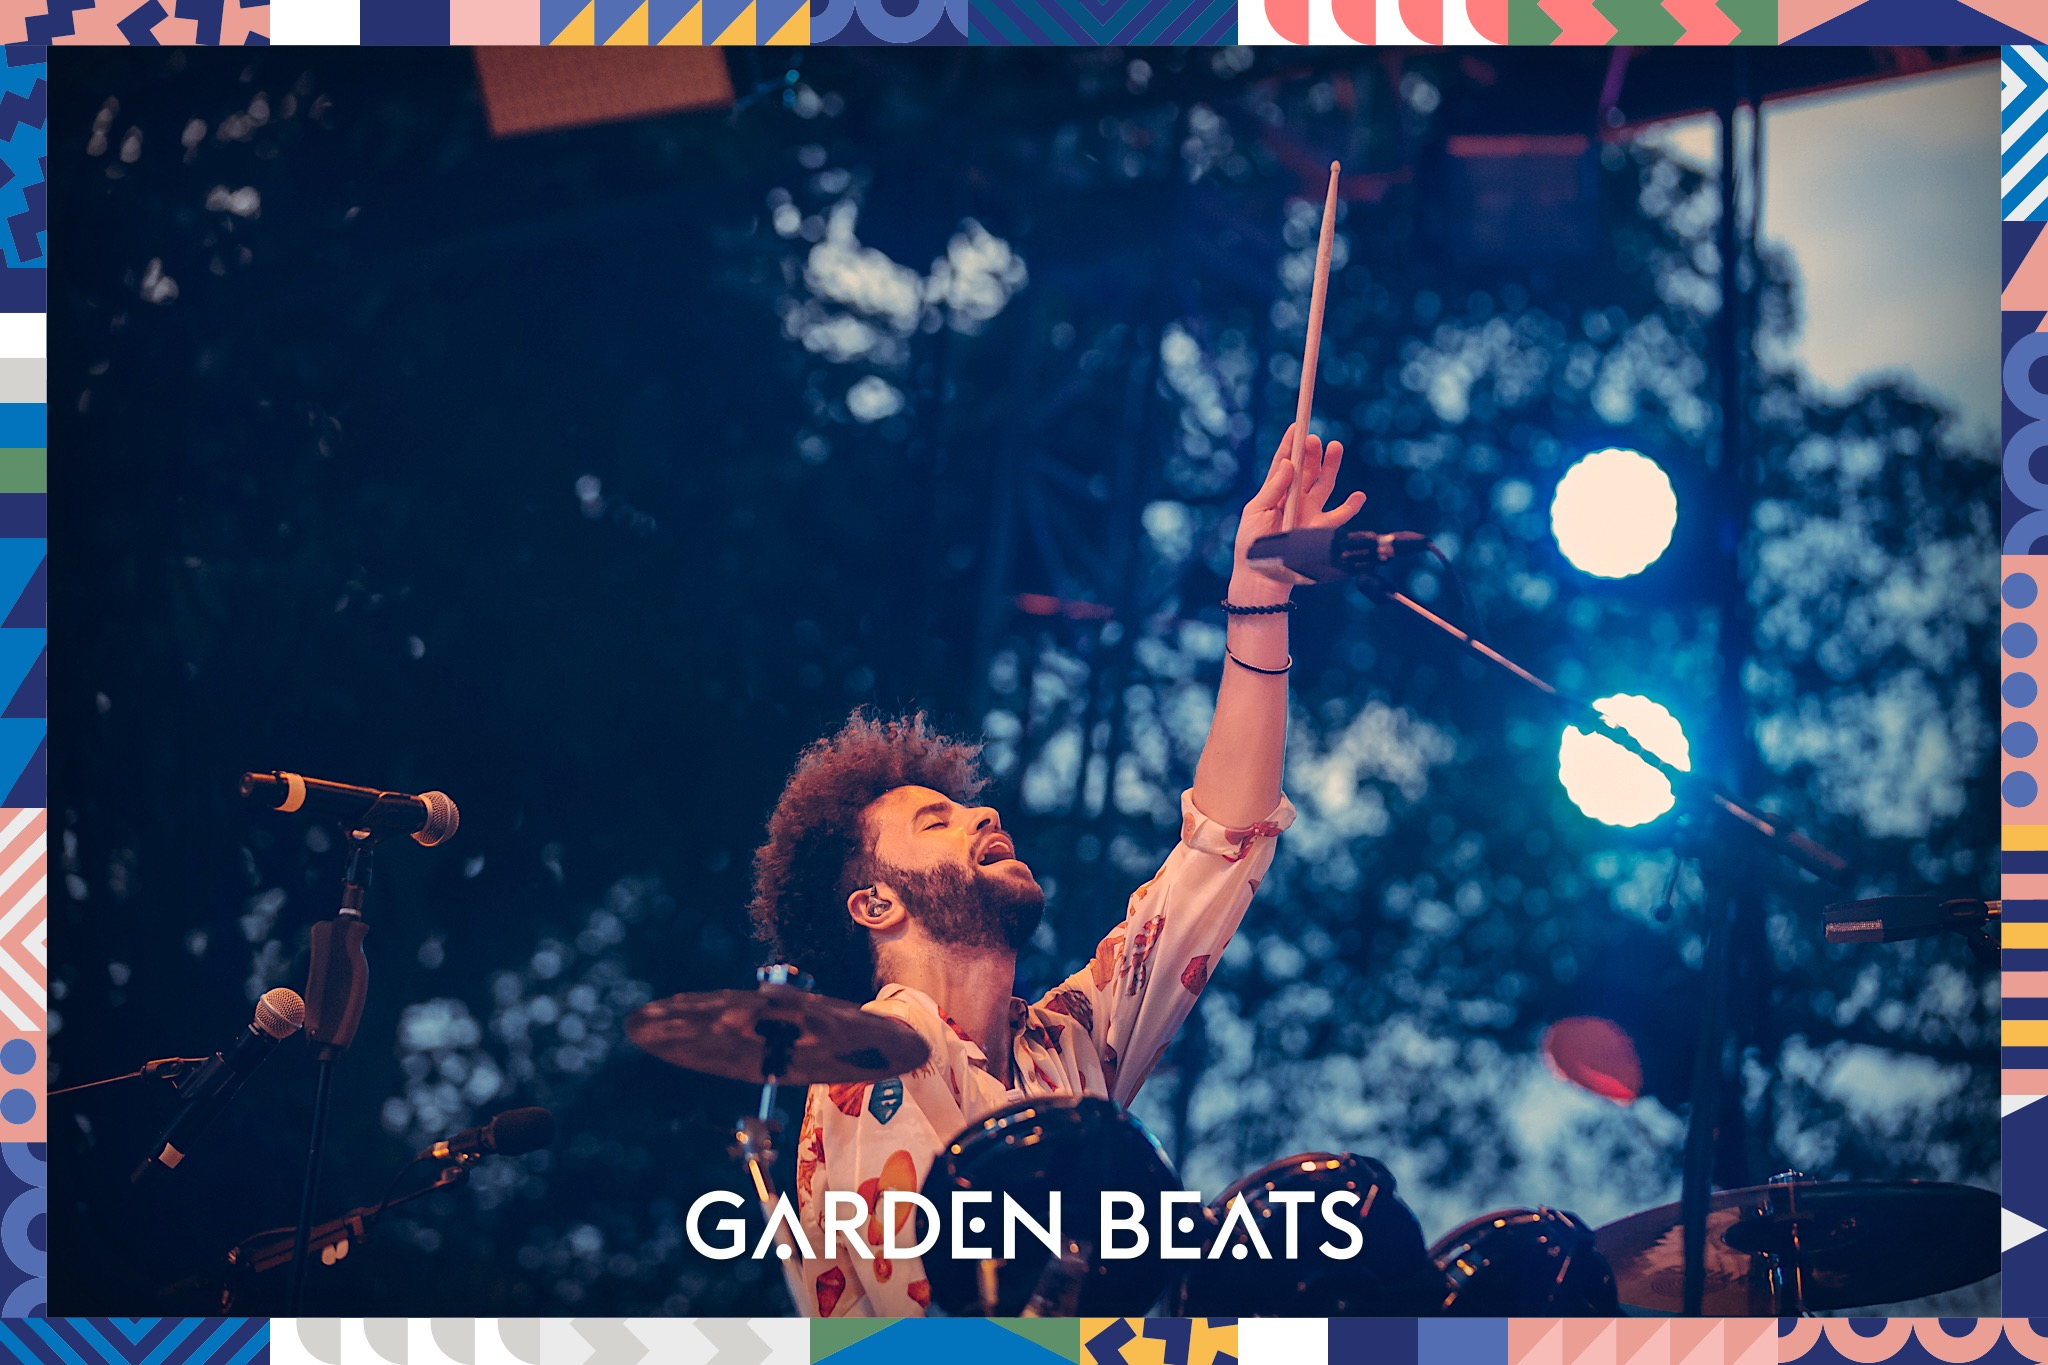 03032018_GardenBeats_Colossal764_Watermarked.jpg